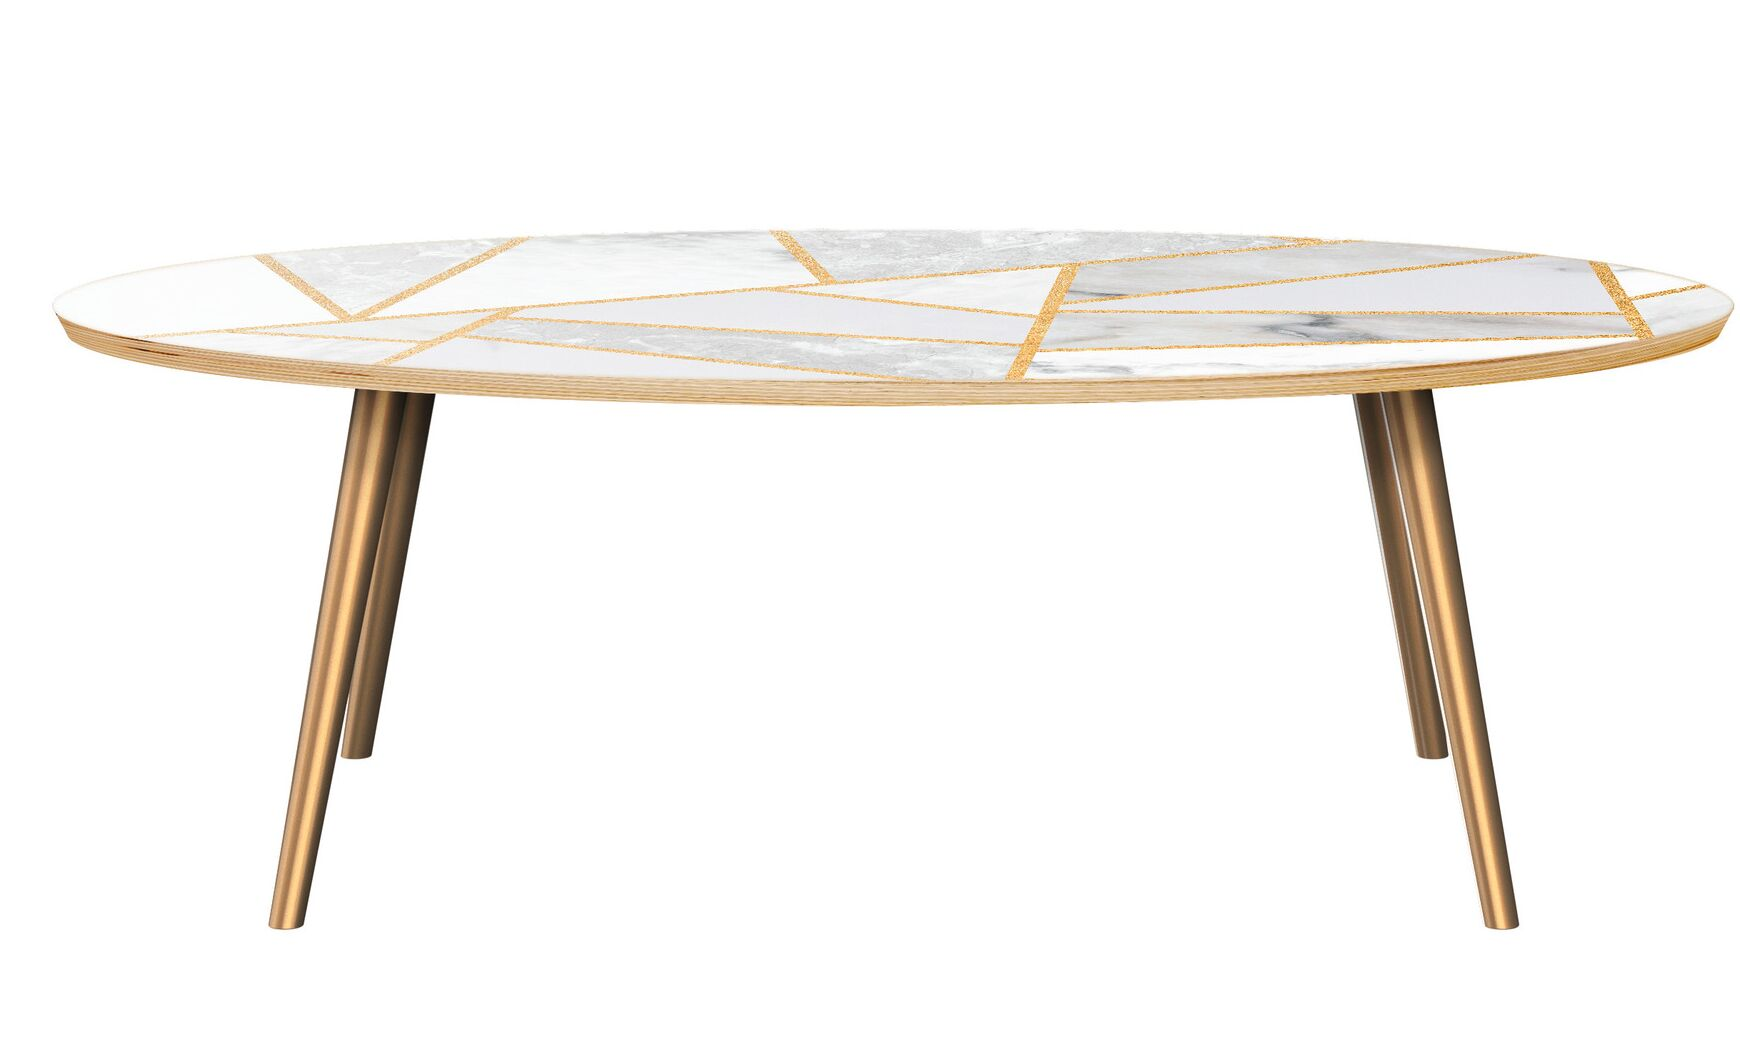 Mcginley Coffee Table Table Top Color: Natural/White, Table Base Color: Brass